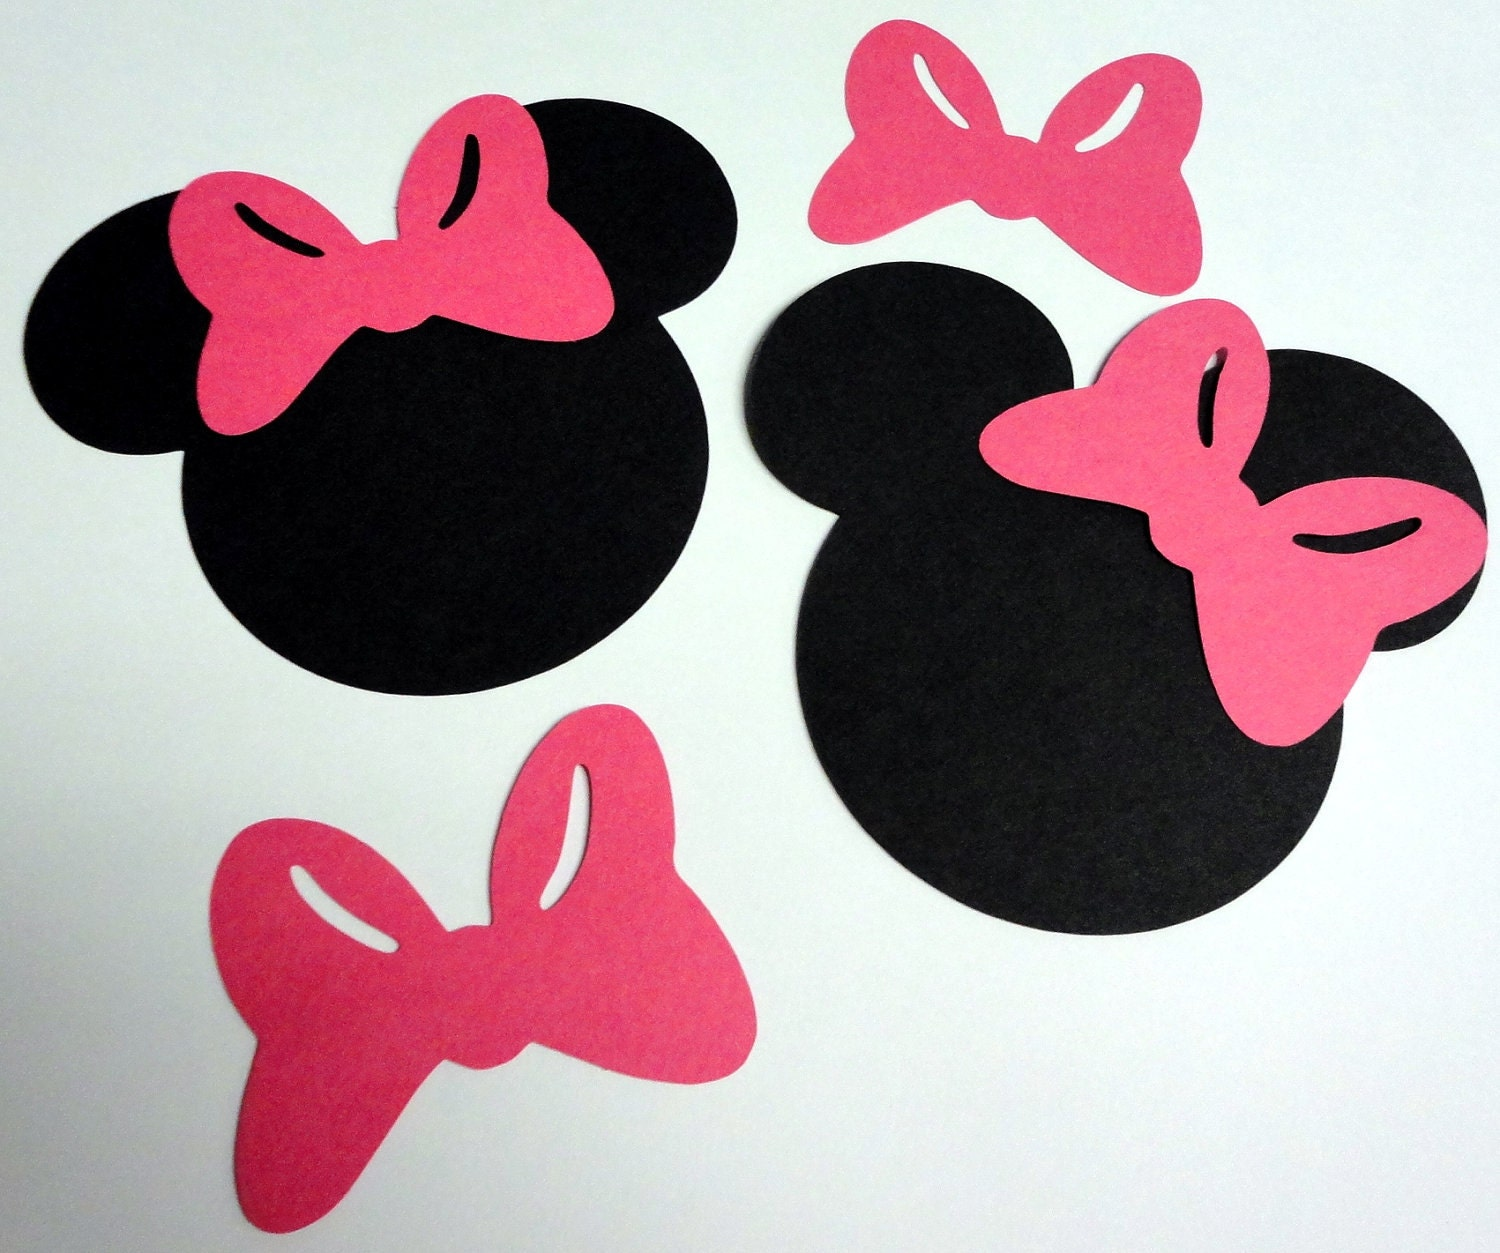 50 5 Minnie Mouse Head Silhouettes Black by ...